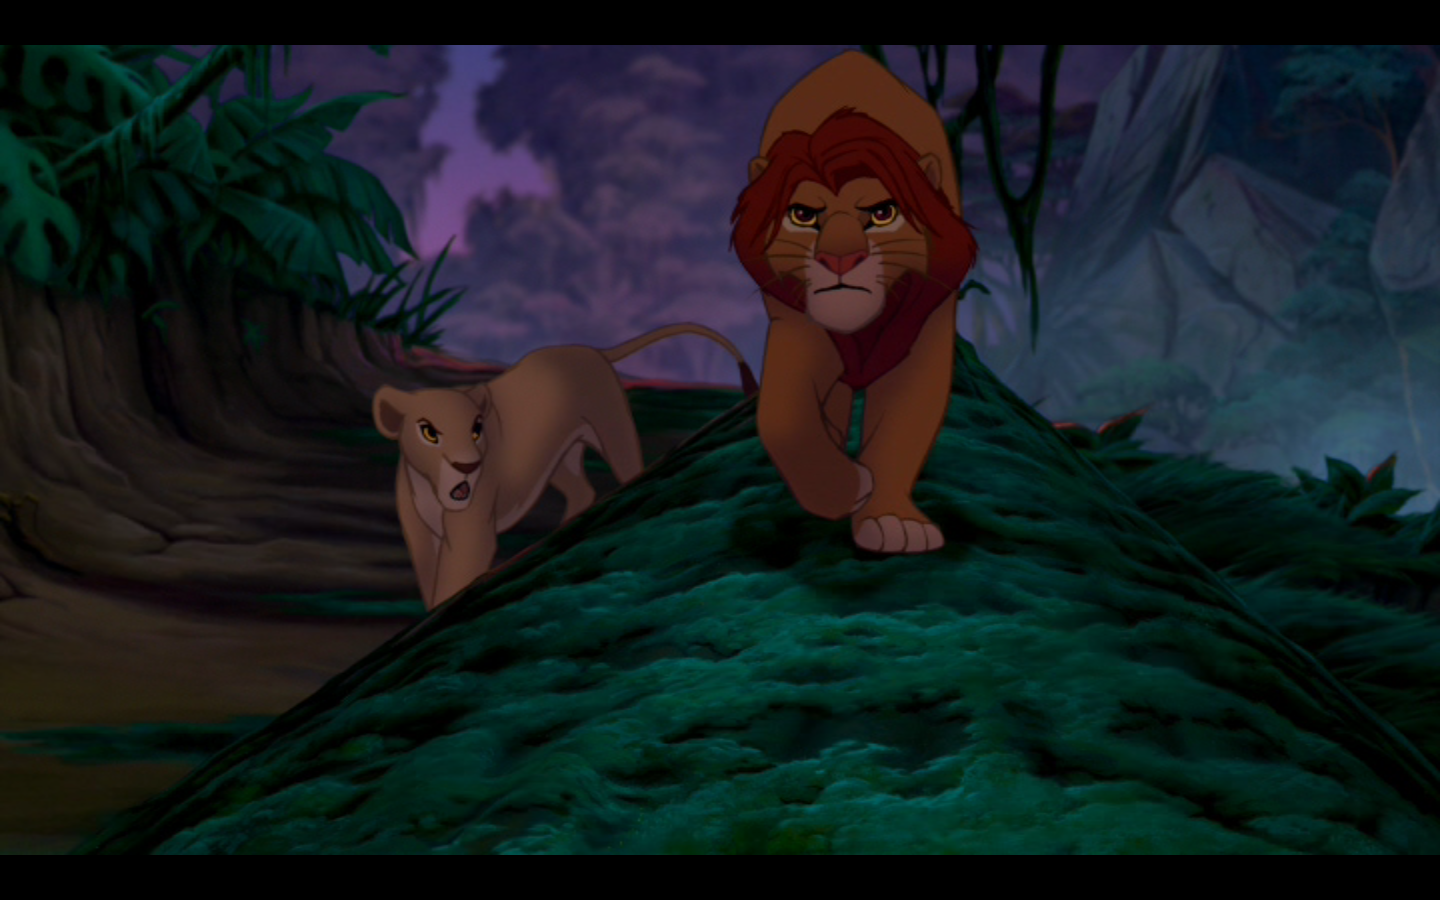 the lion king movie analysis Sarabi's full story   where was simba's mother in the lion king ii: discovering disney - duration: 8:24 wotso videos 639,109 views.